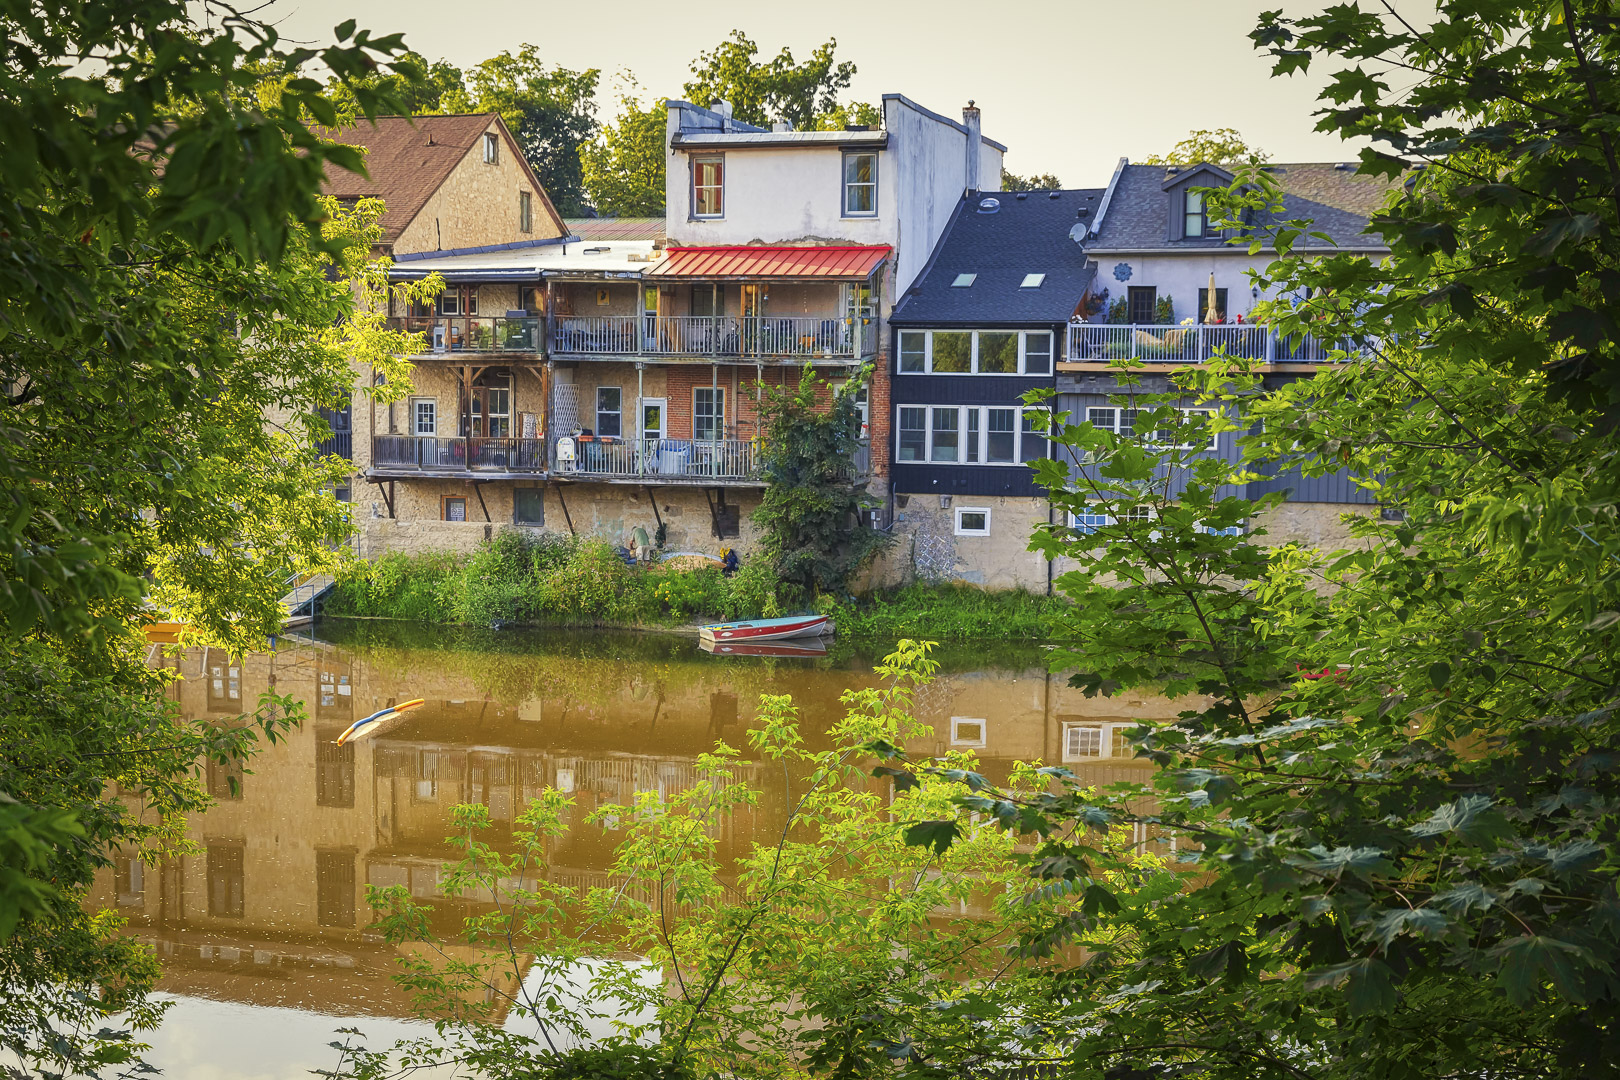 Homes along the Grand River